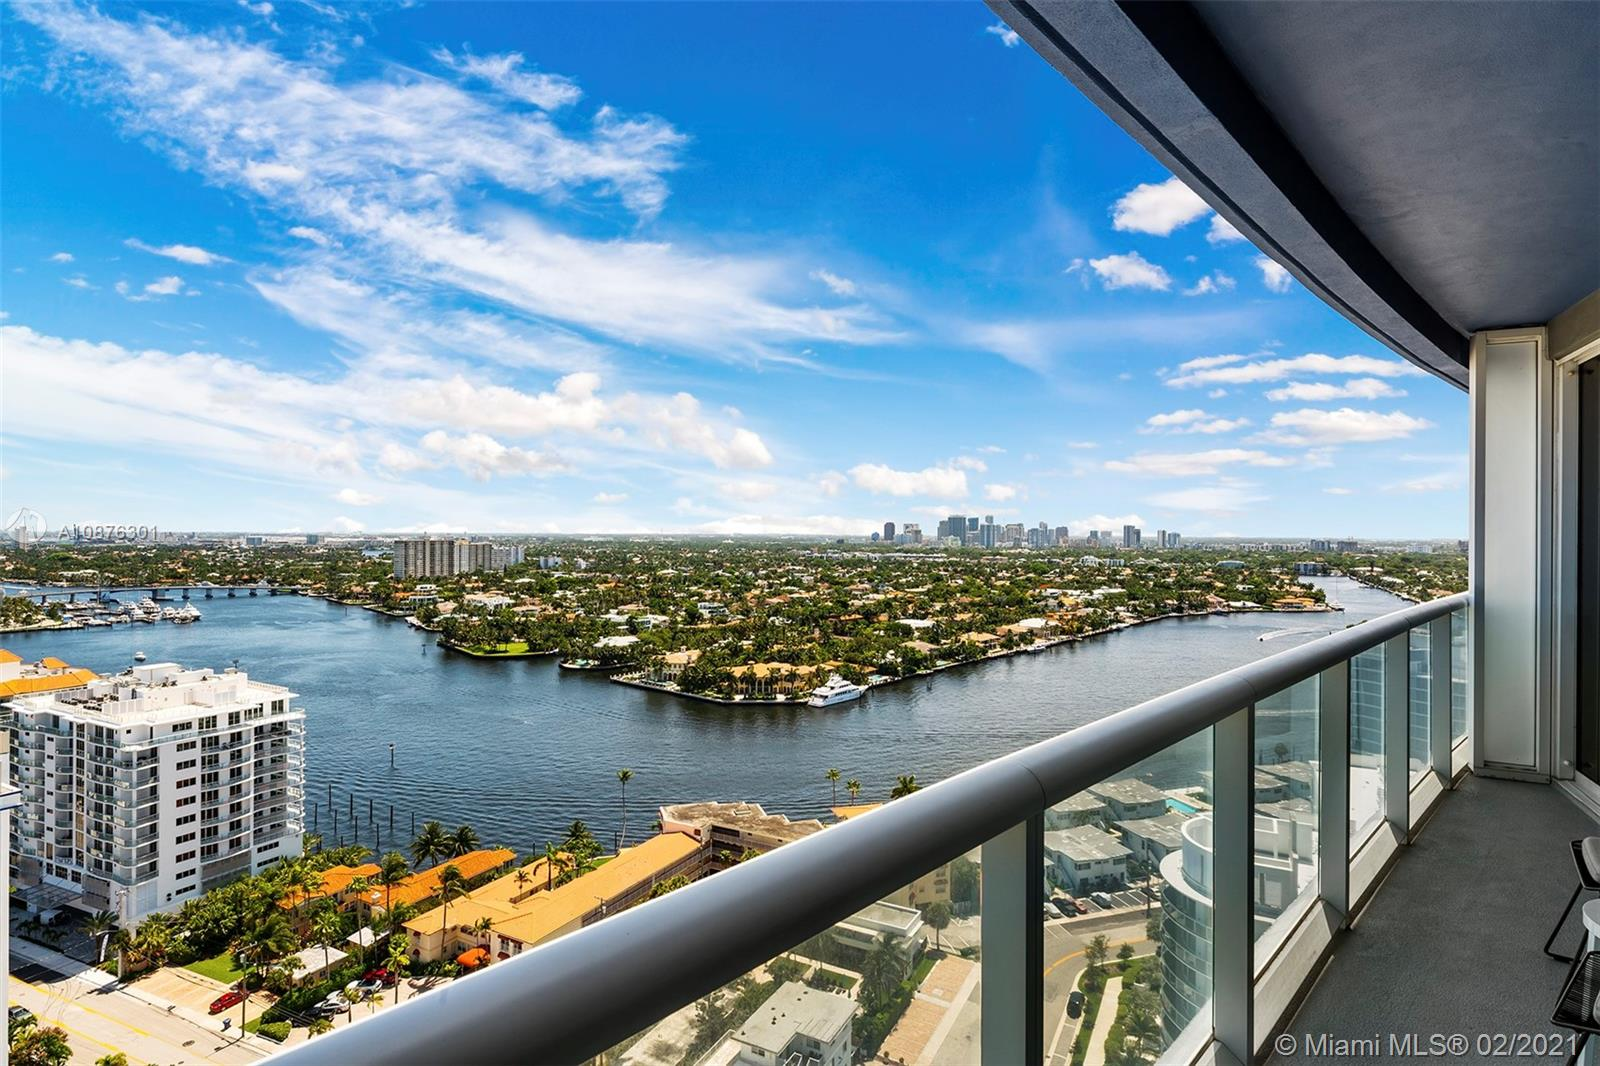 Spectacular, most desirable 1 bedroom/1 bathroom condo on the 23rd floor! Breathtaking South views of both the picturesque ocean and intracoastal as well as the downtown Fort Lauderdale skyline.  From sunrise to sunset, your views are one-of-a-kind!  Fully furnished with a king bed and sofa bed, electronics, kitchenware and linens. 825 sq. ft. open layout. Owners closet and washer/dryer in the unit.  Live in the unit or rent it out!  No Rental Restrictions! Short term rentals ok with either the Hotel Program or an independent property manager. Great income producing property. W Hotel Resort Amenities include 2 pools (East and West), Away Spa, Fitness Center, Living Room Bar as well as dining at the Sushi Bar, Steak954, El Vez, and SoBe Vegan.  Unit won't last!